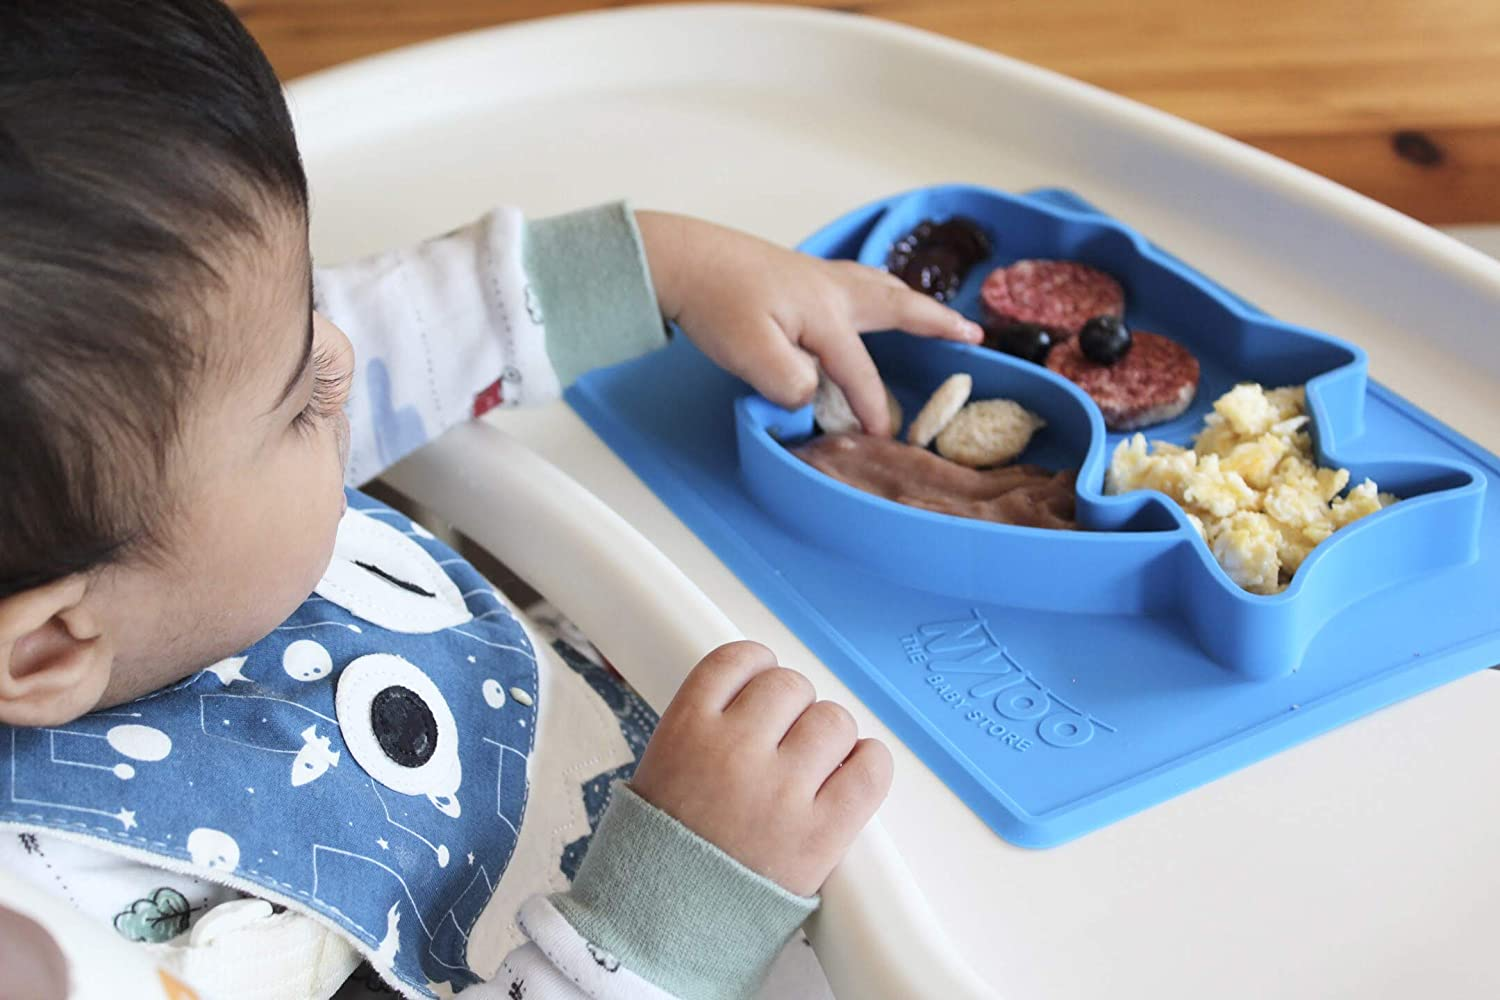 Blue Baby Shark Christmas Placemat Plate by Nyloo -The Baby Store for Babies and Toddlers over 6 Months, 100/% Silicone with Suction